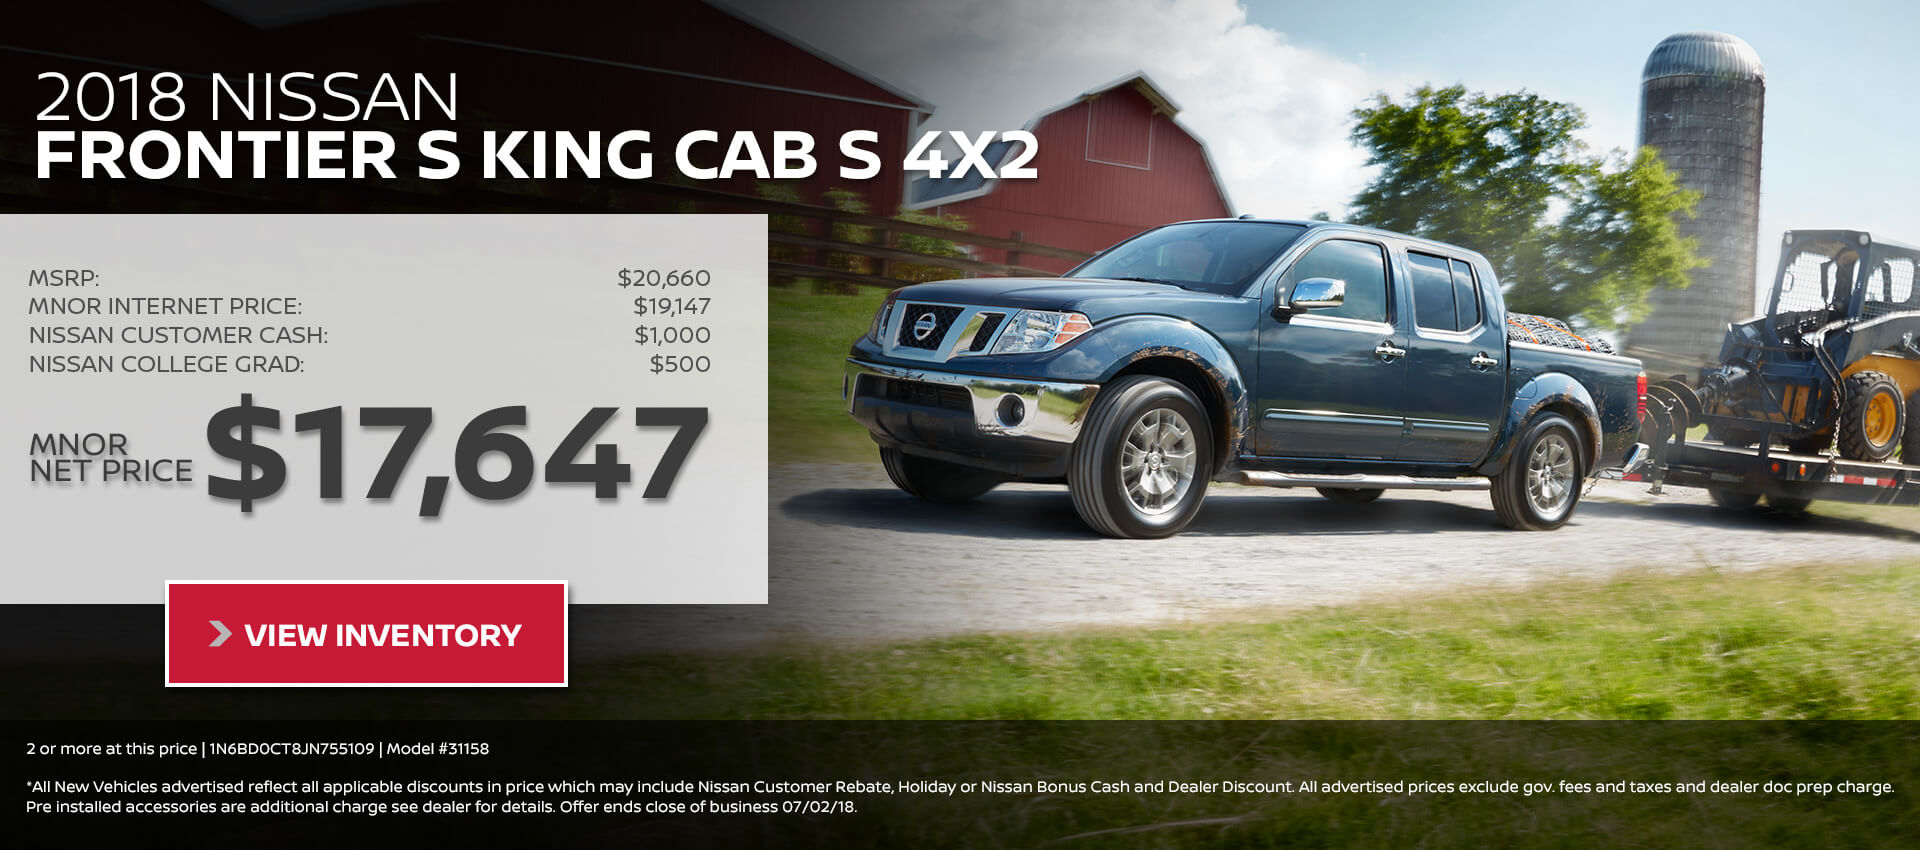 2018 Nissan Frontier King Cab